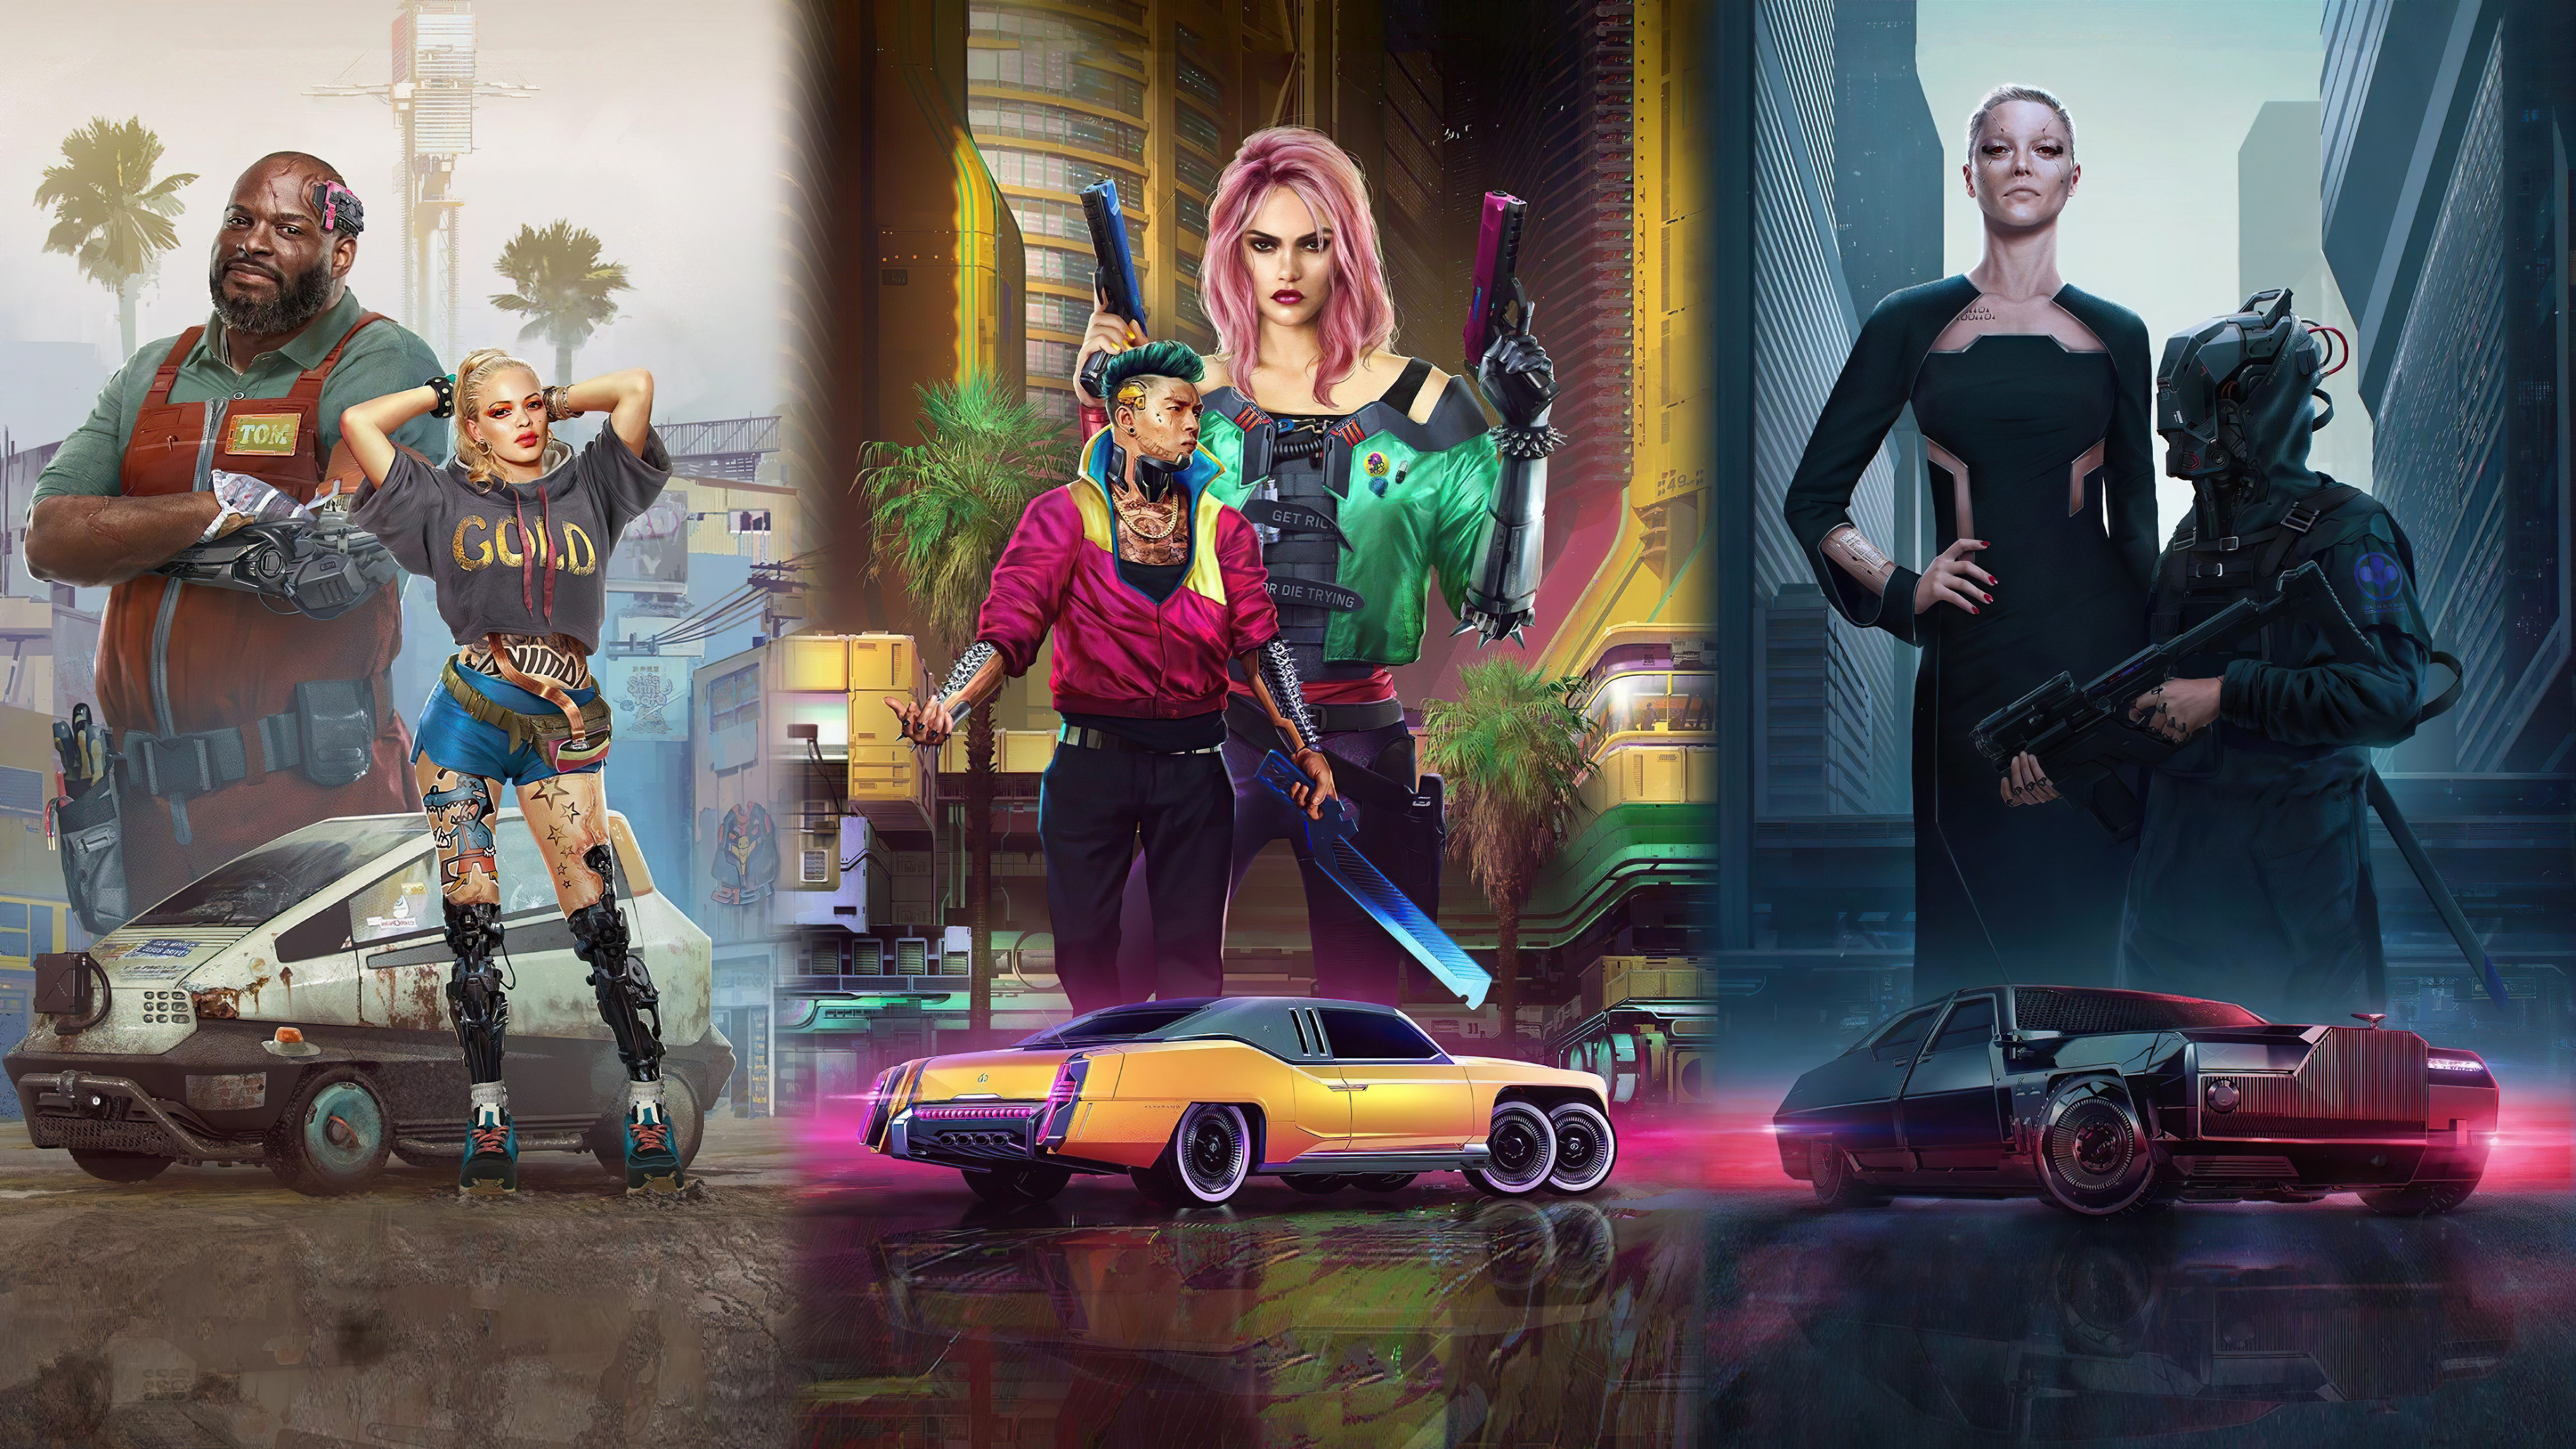 cyberpunk 2077 4k 2020 new game 1610662316 - Cyberpunk 2077 4k 2020 New Game - Cyberpunk 2077 4k 2020 New Game wallpapers